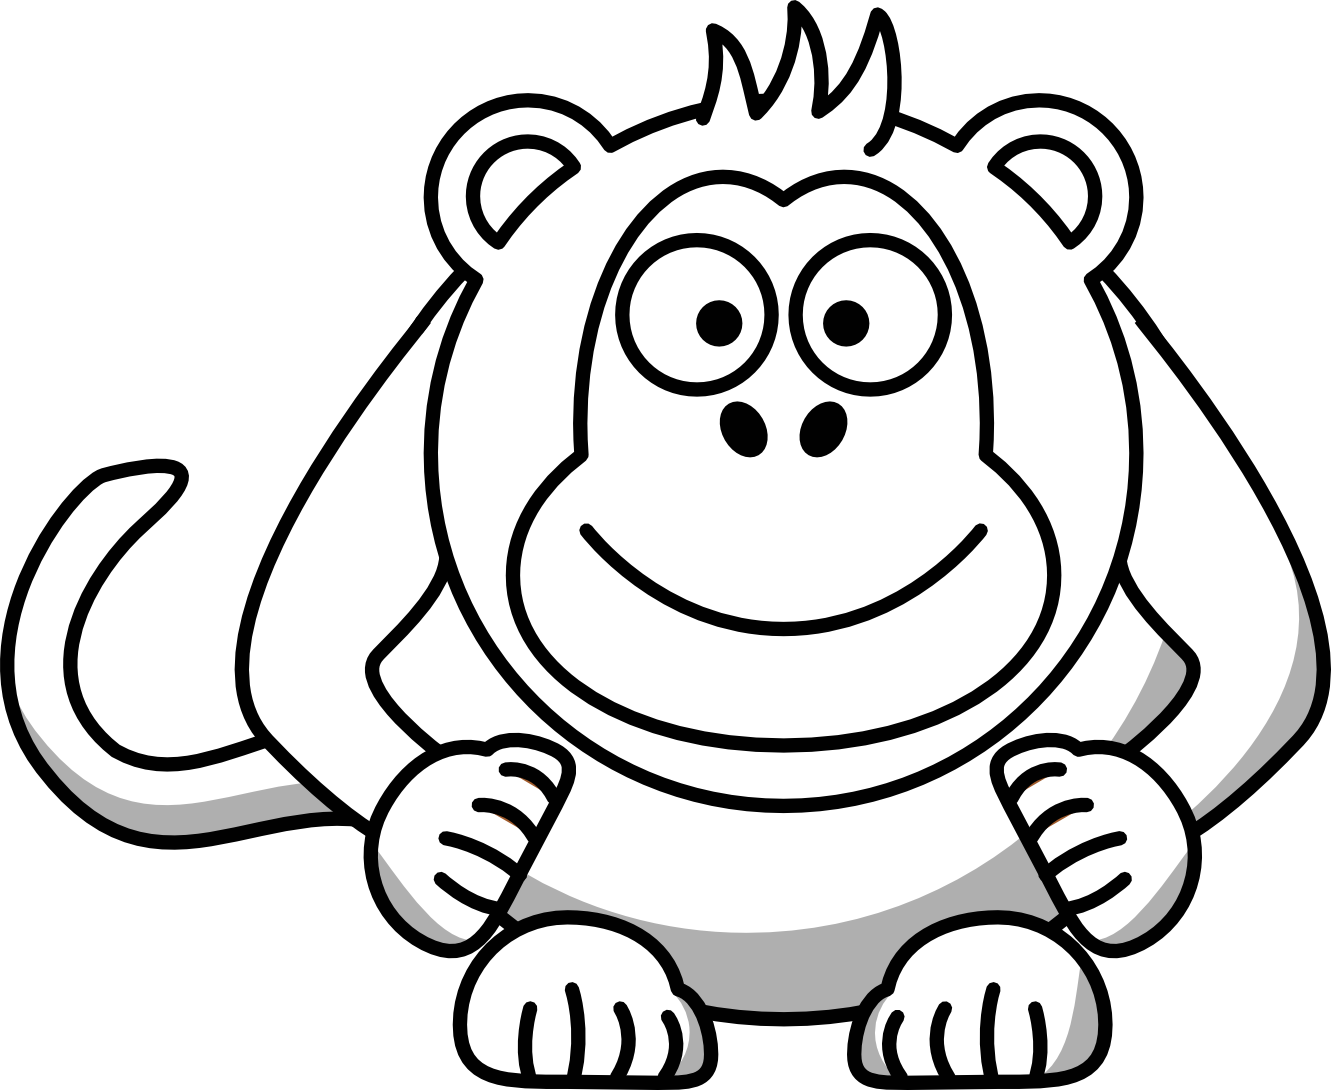 Black baby with crown clipart freeuse Gorilla Clipart Black And White | Free download best Gorilla Clipart ... freeuse